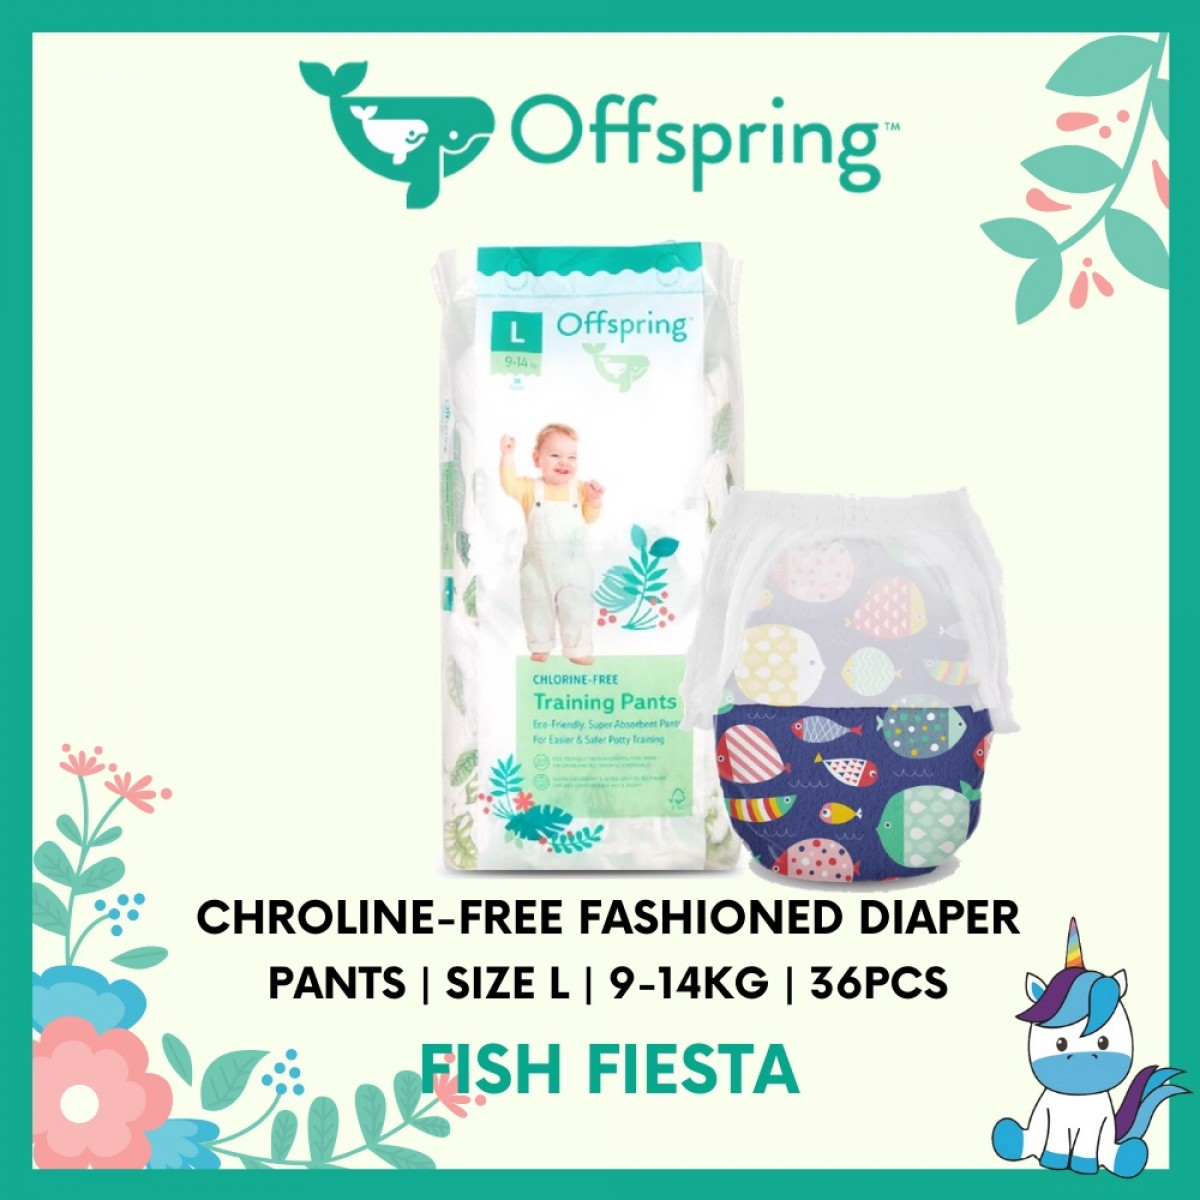 Offspring Chroline-Free Fashioned Pants Diaper L 36pcs - 9 Designs